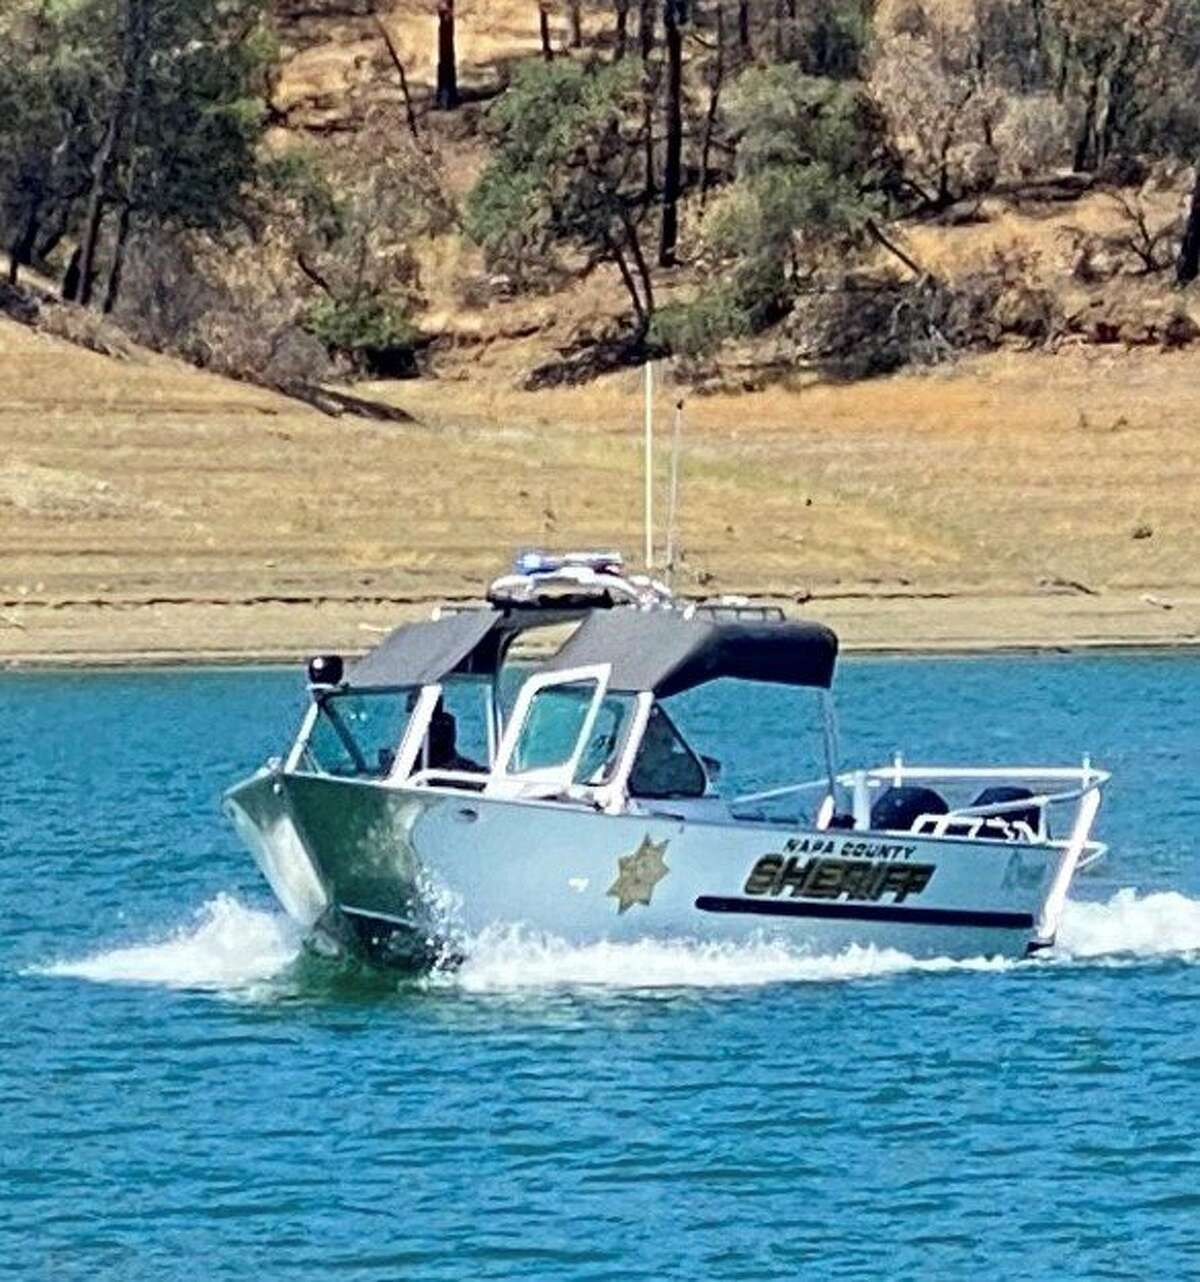 Authorities recovered the body of a 22-year-old San Jose man from a Napa County lake on Saturday, June 19, 2021.